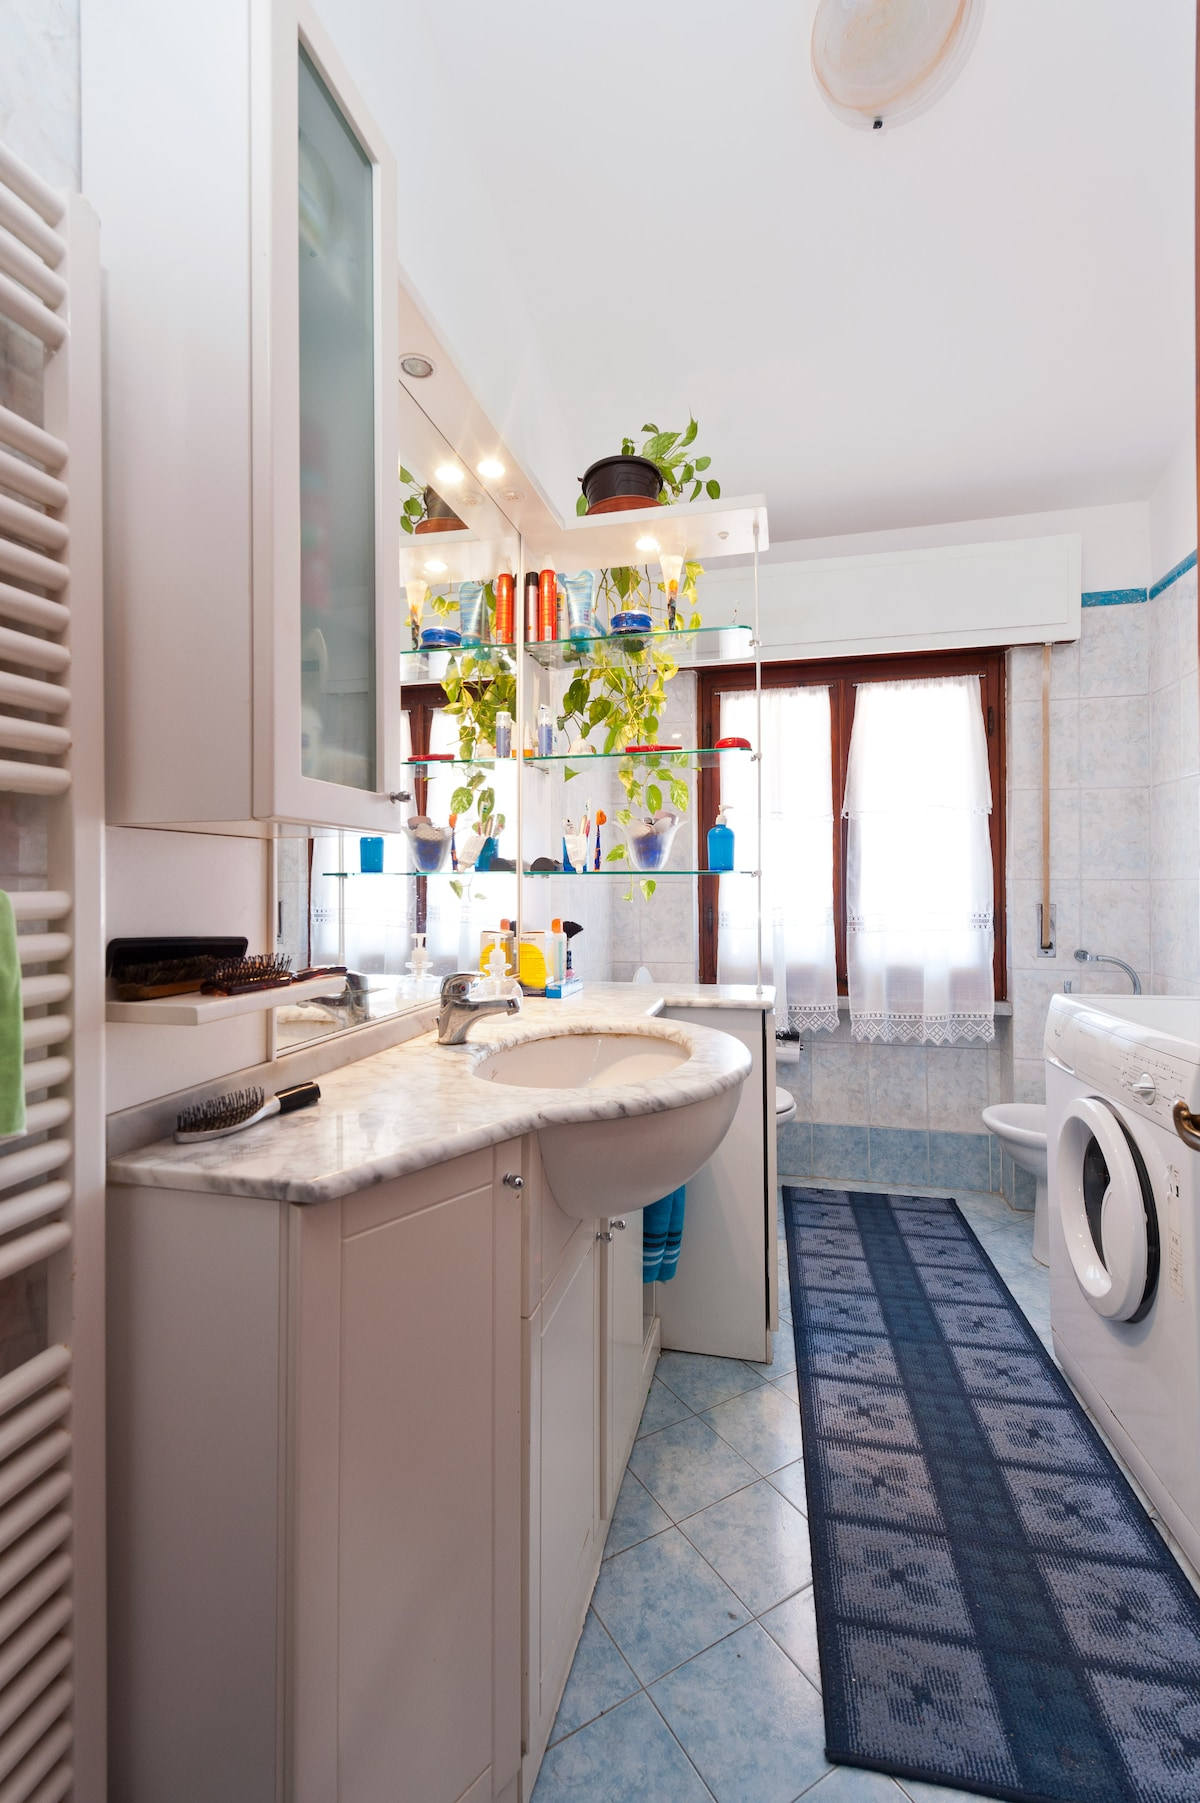 The bathroom with the posibility to use the laundry machine with an extra small fee